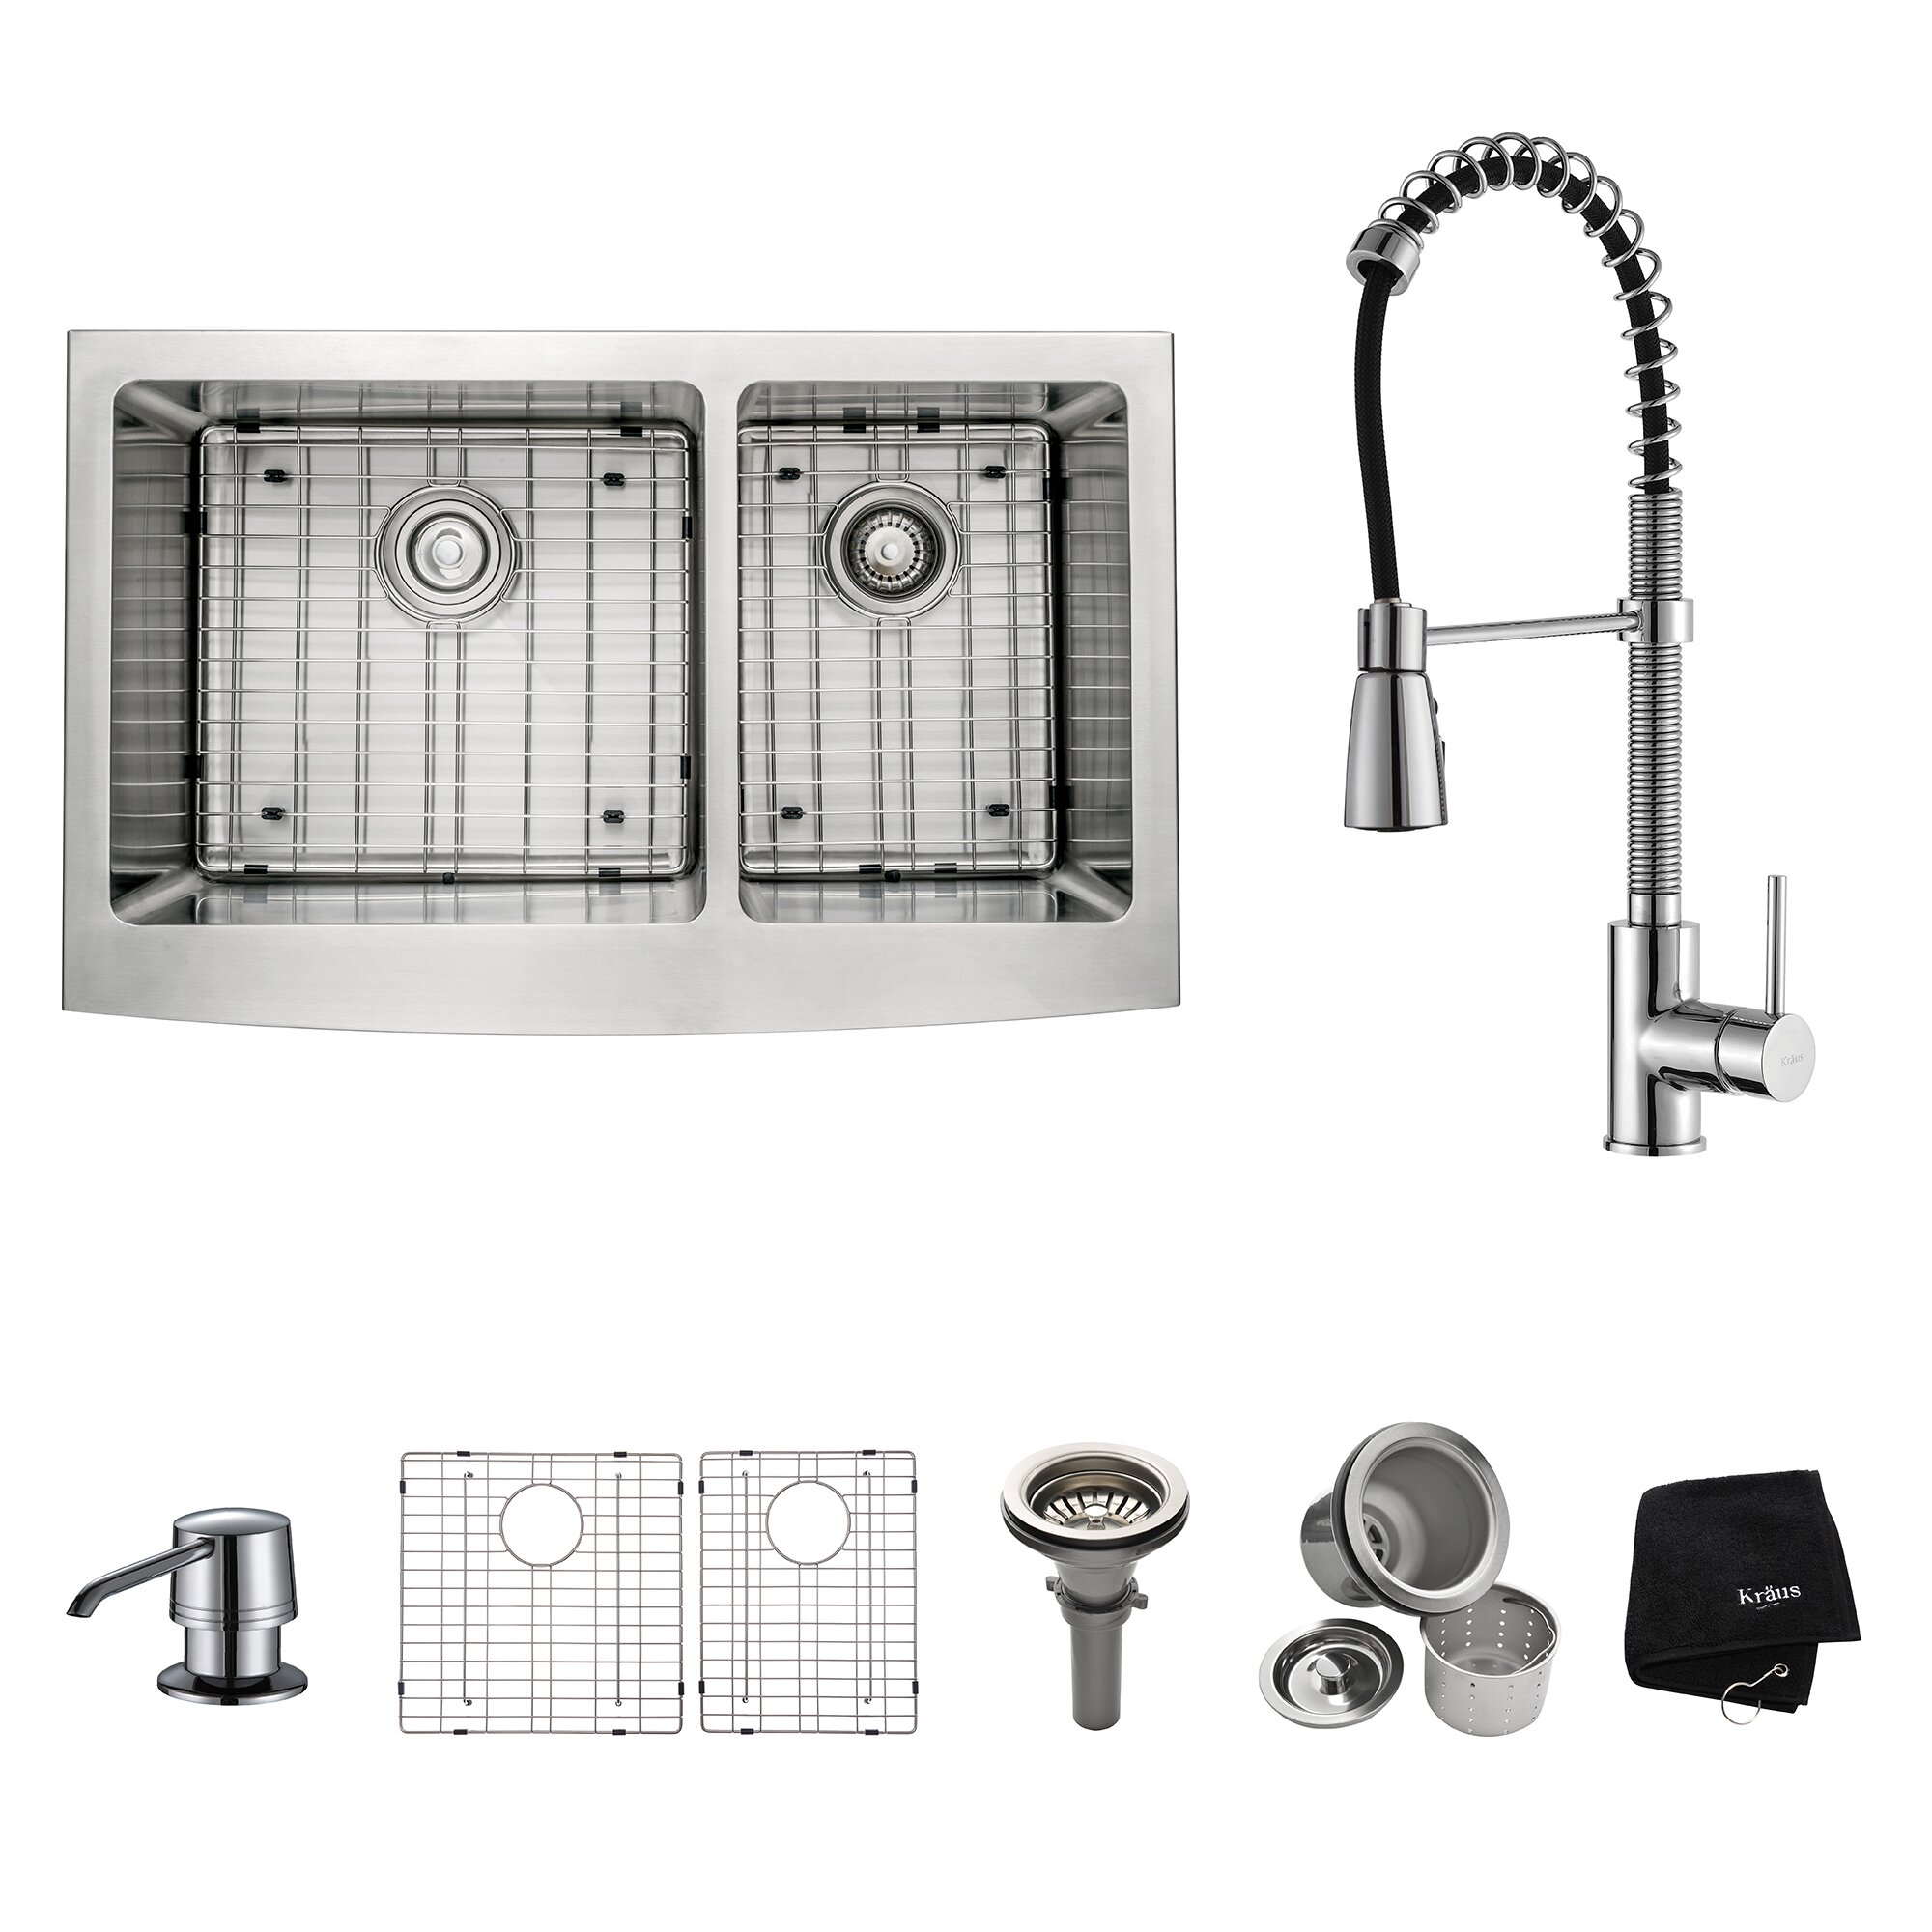 Farmhouse Apron Kitchen Sinks Kraus Kitchen Combo 33 X 21 Double Basin Farmhouse Apron Kitchen